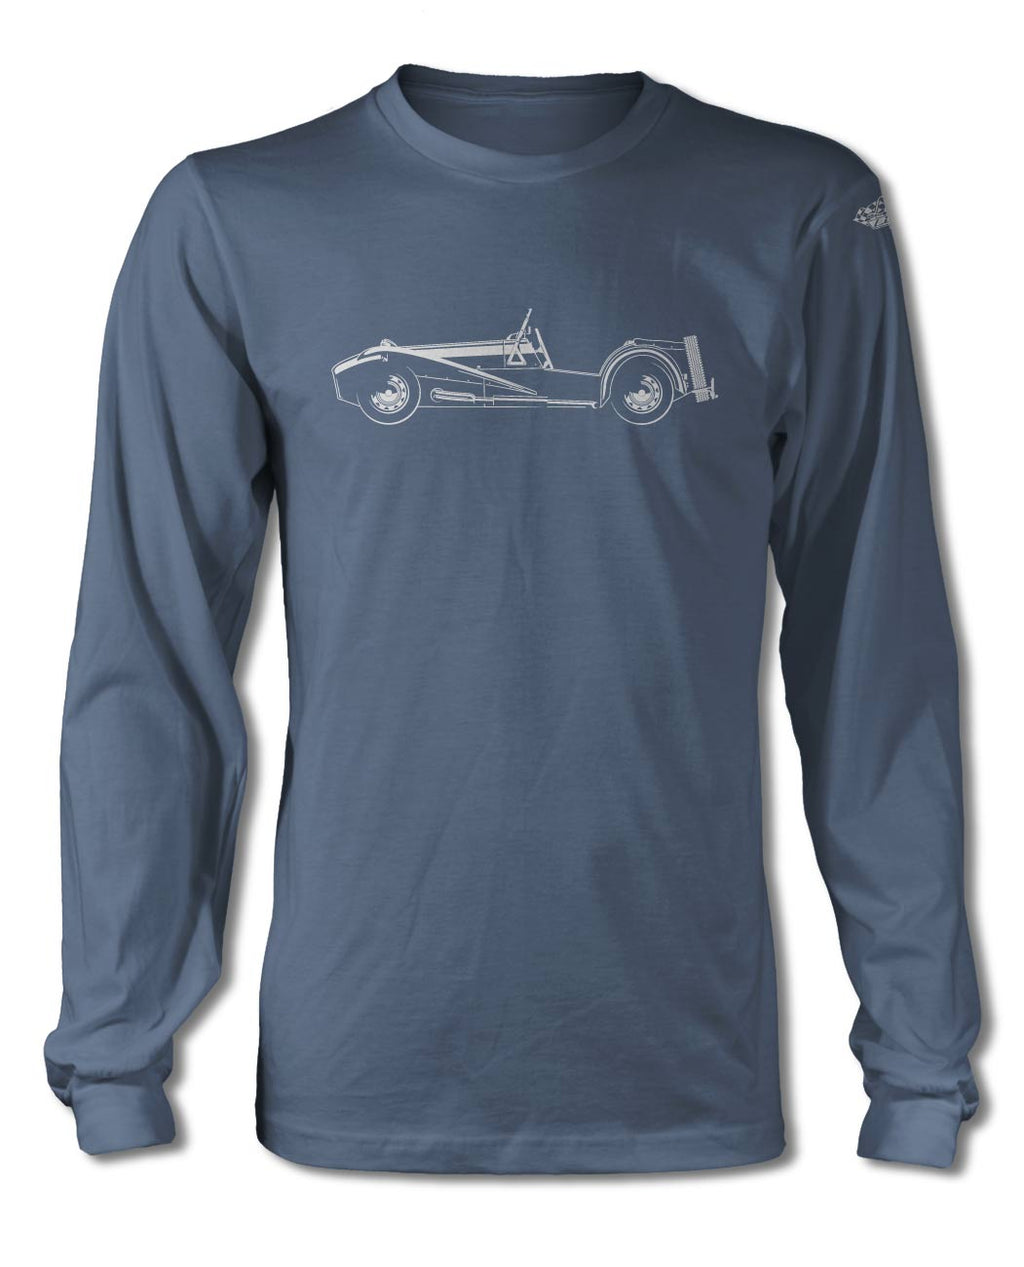 Lotus Seven 7 T-Shirt - Long Sleeves - Side View